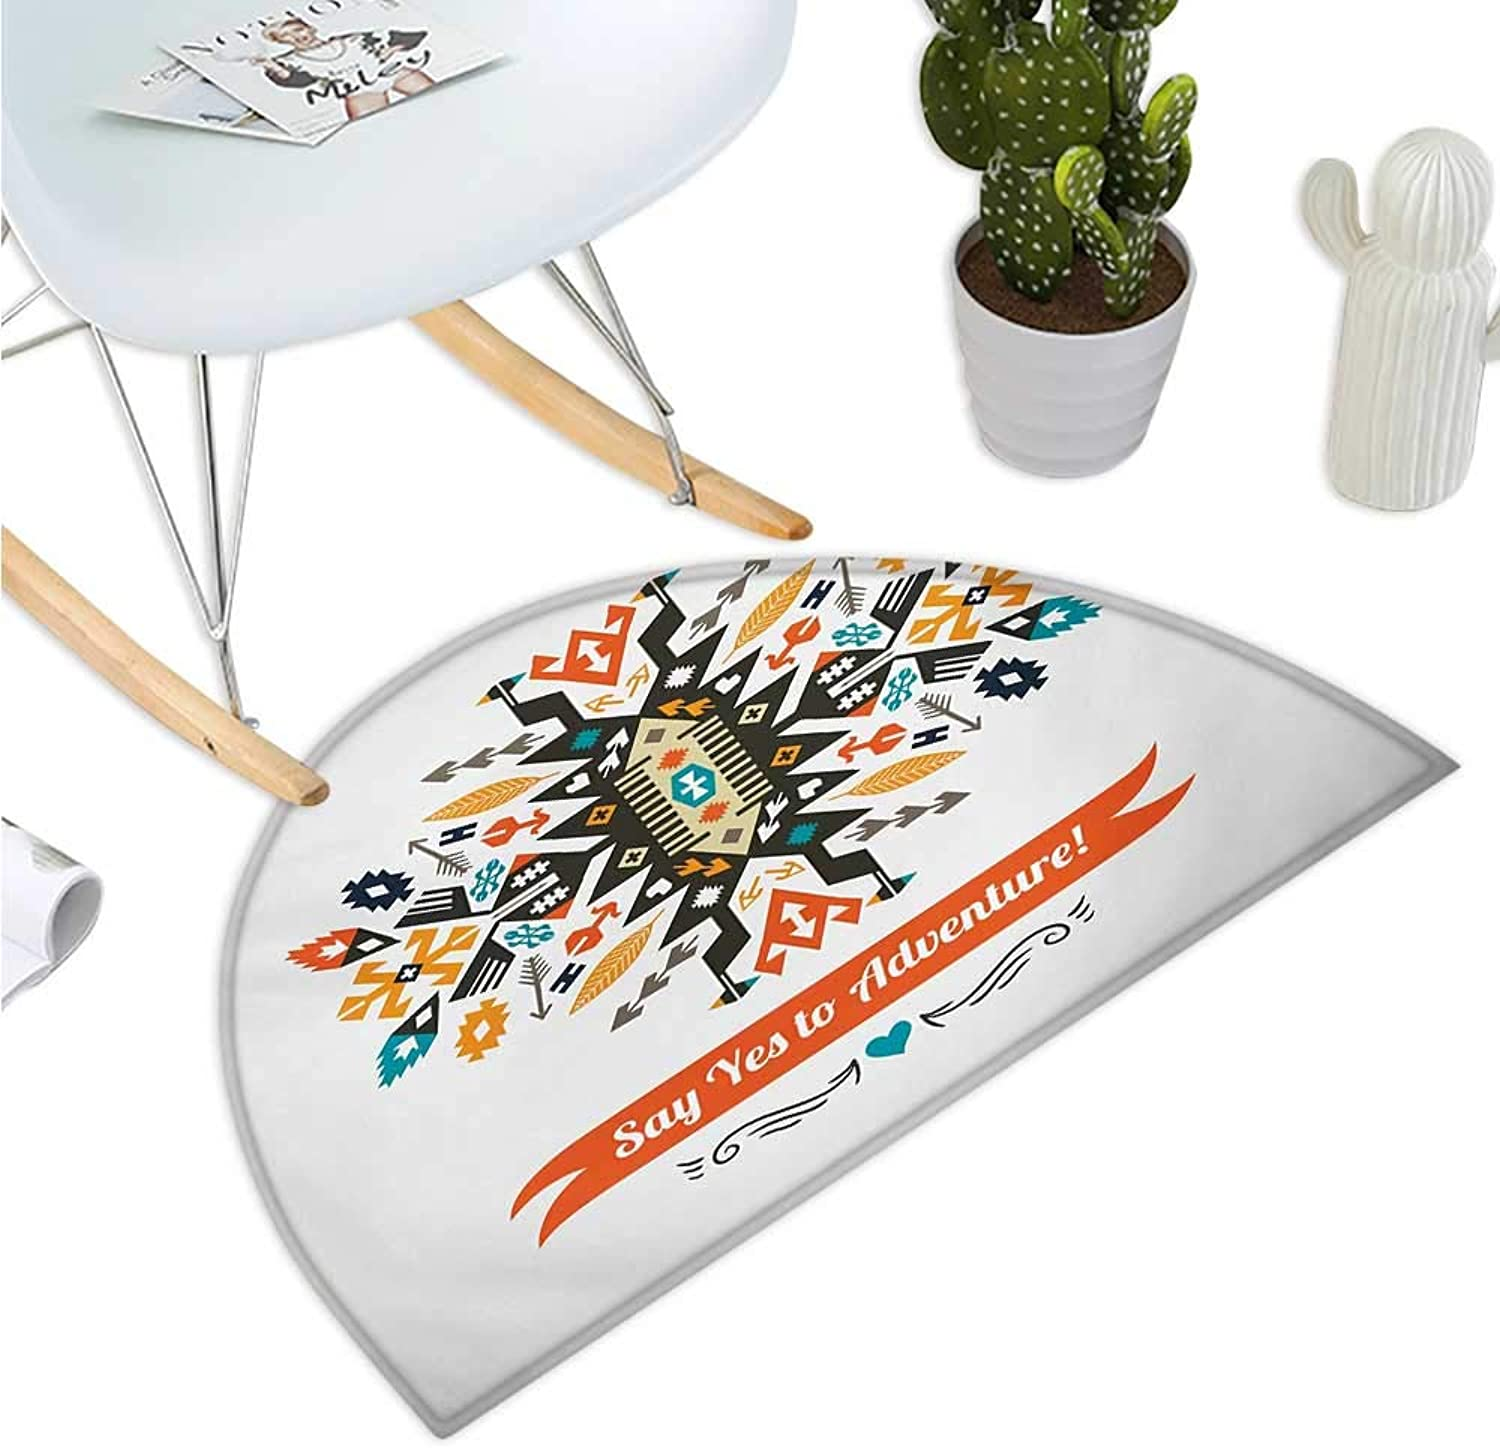 Tribal Semicircular Cushion Modern Design with Ethnic Details Yes to Adventure Quoted White Backdrop Artwork Halfmoon doormats H 35.4  xD 53.1  Multicolor